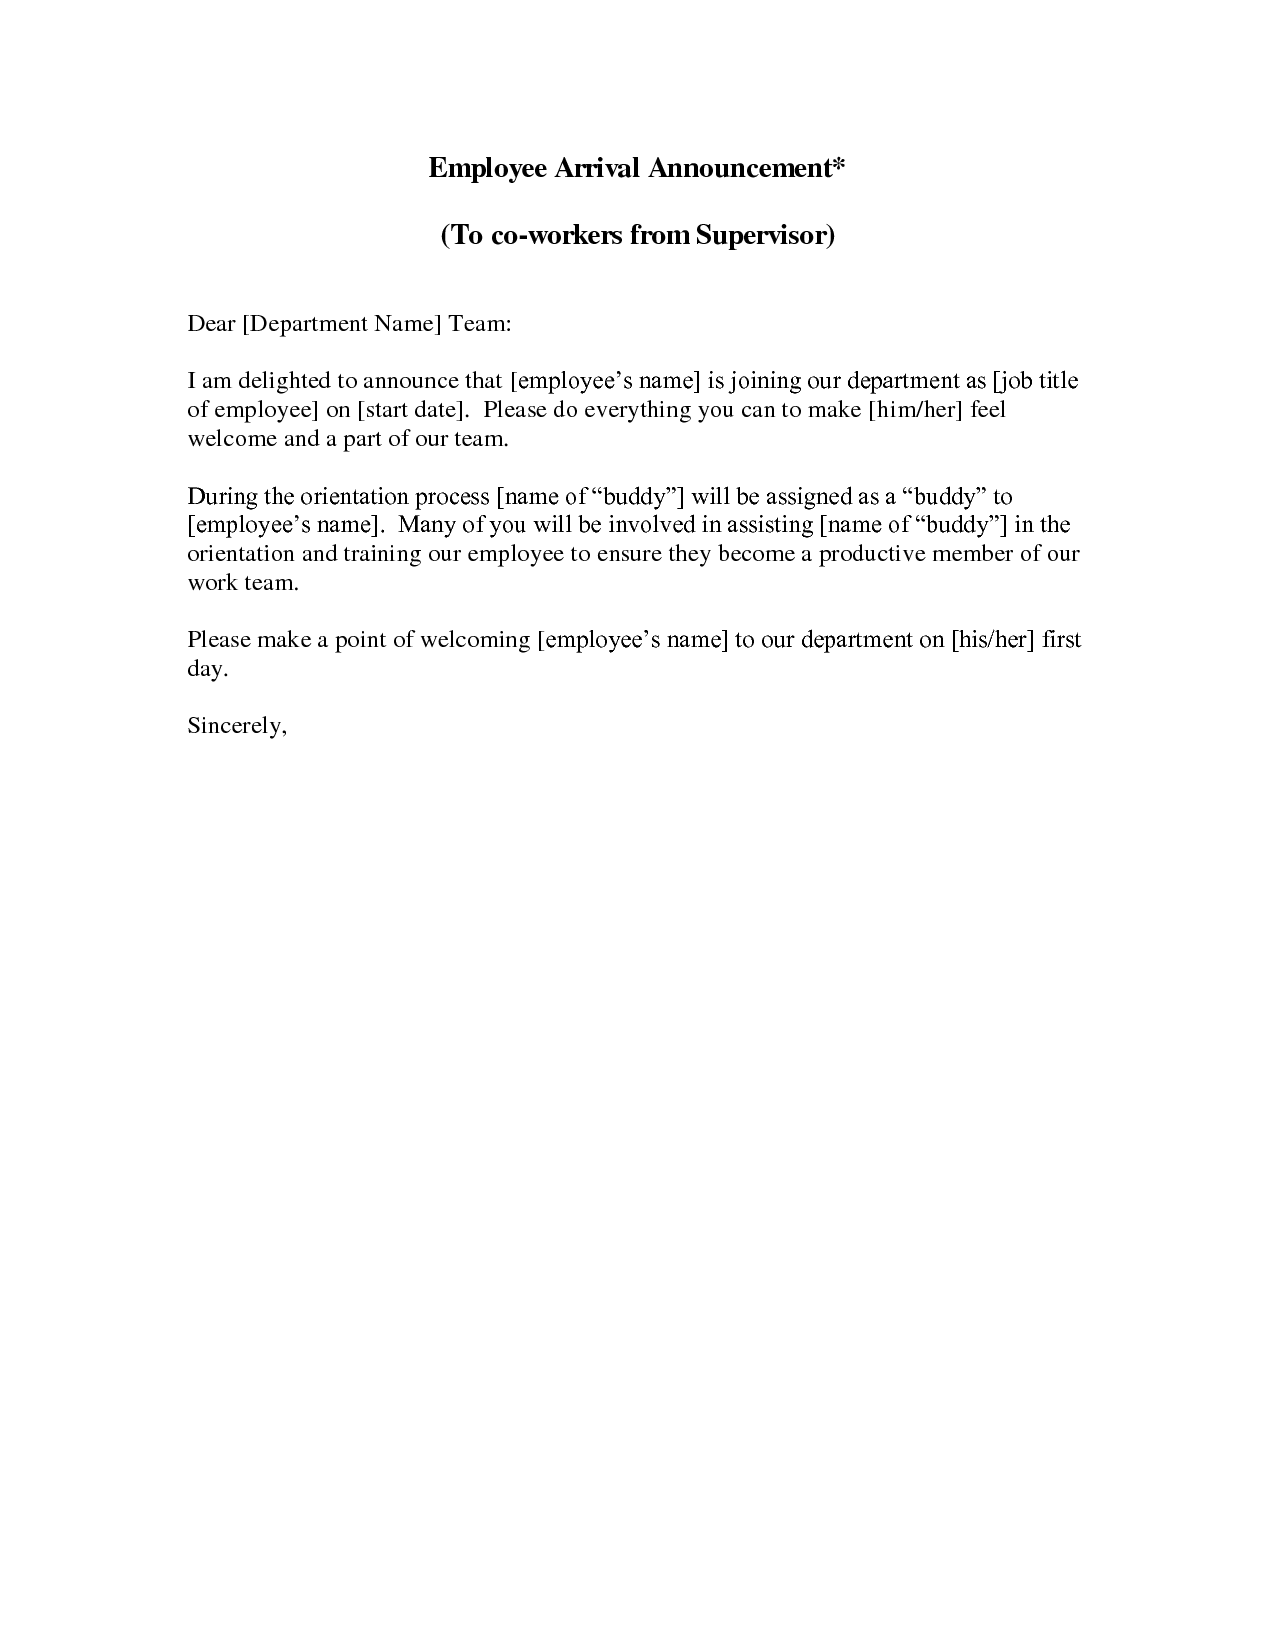 Organizational Announcement Samples Amazing New Employee Announcement Letter  This Sample New Employee .